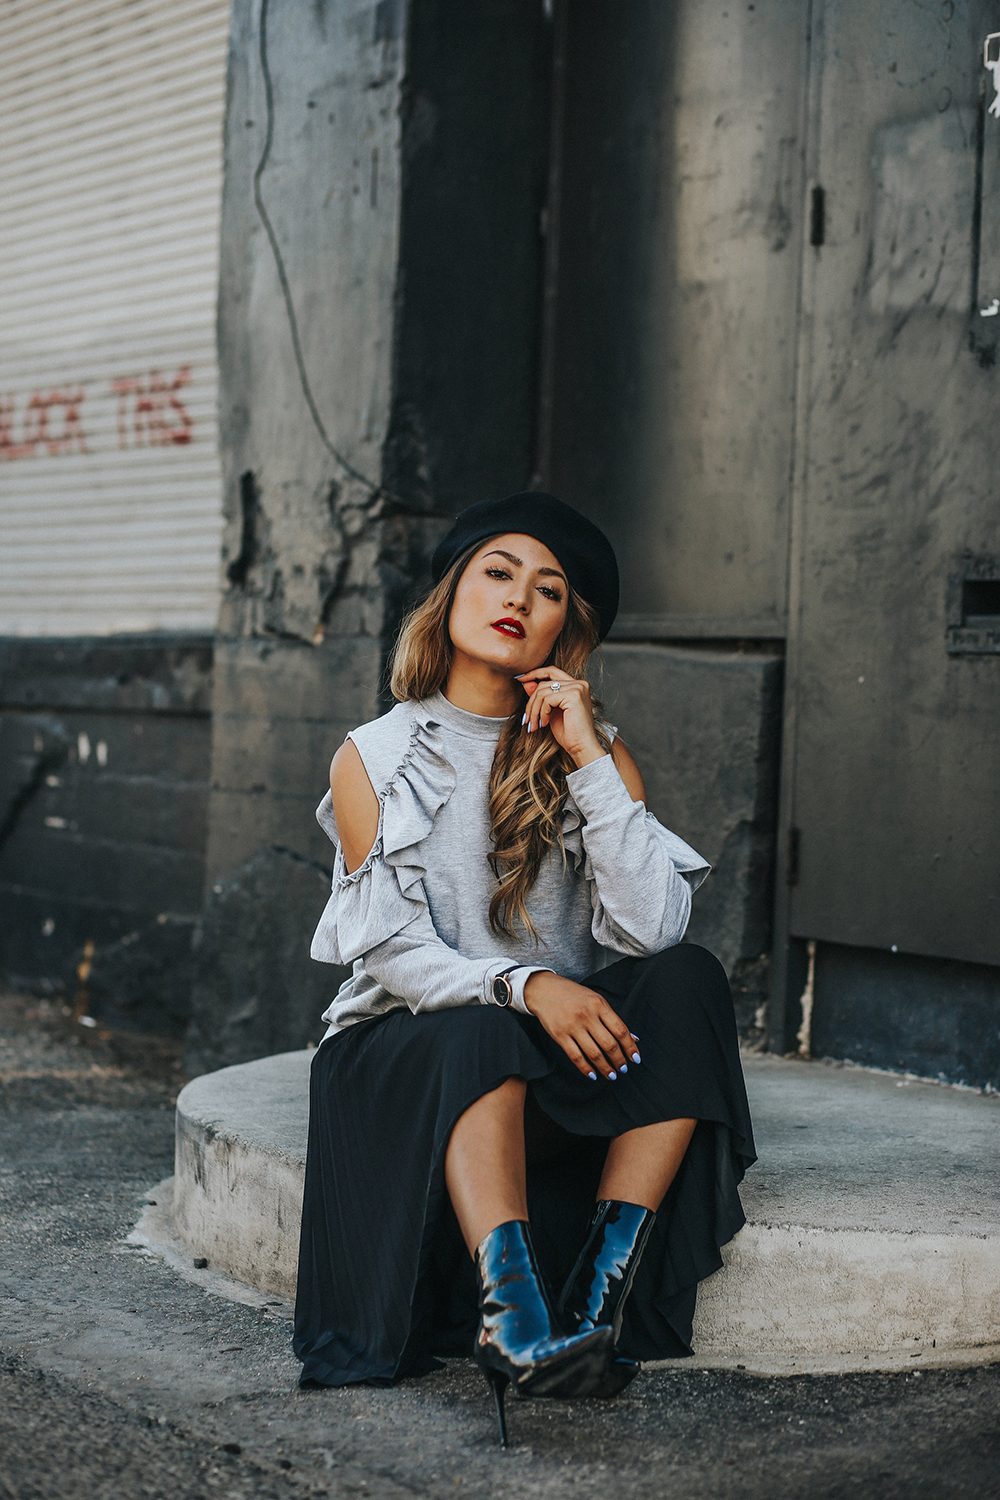 , hat trends 2017, hat trends, hats, trending, melrodstyle, street style, ootd, outfit, outfits, la blogger, blogger style, latina blogger, hispanic blogger, mexican blogger, whittier blogger, fashion blogger, lifestyle, Hats That Are Having A Moment